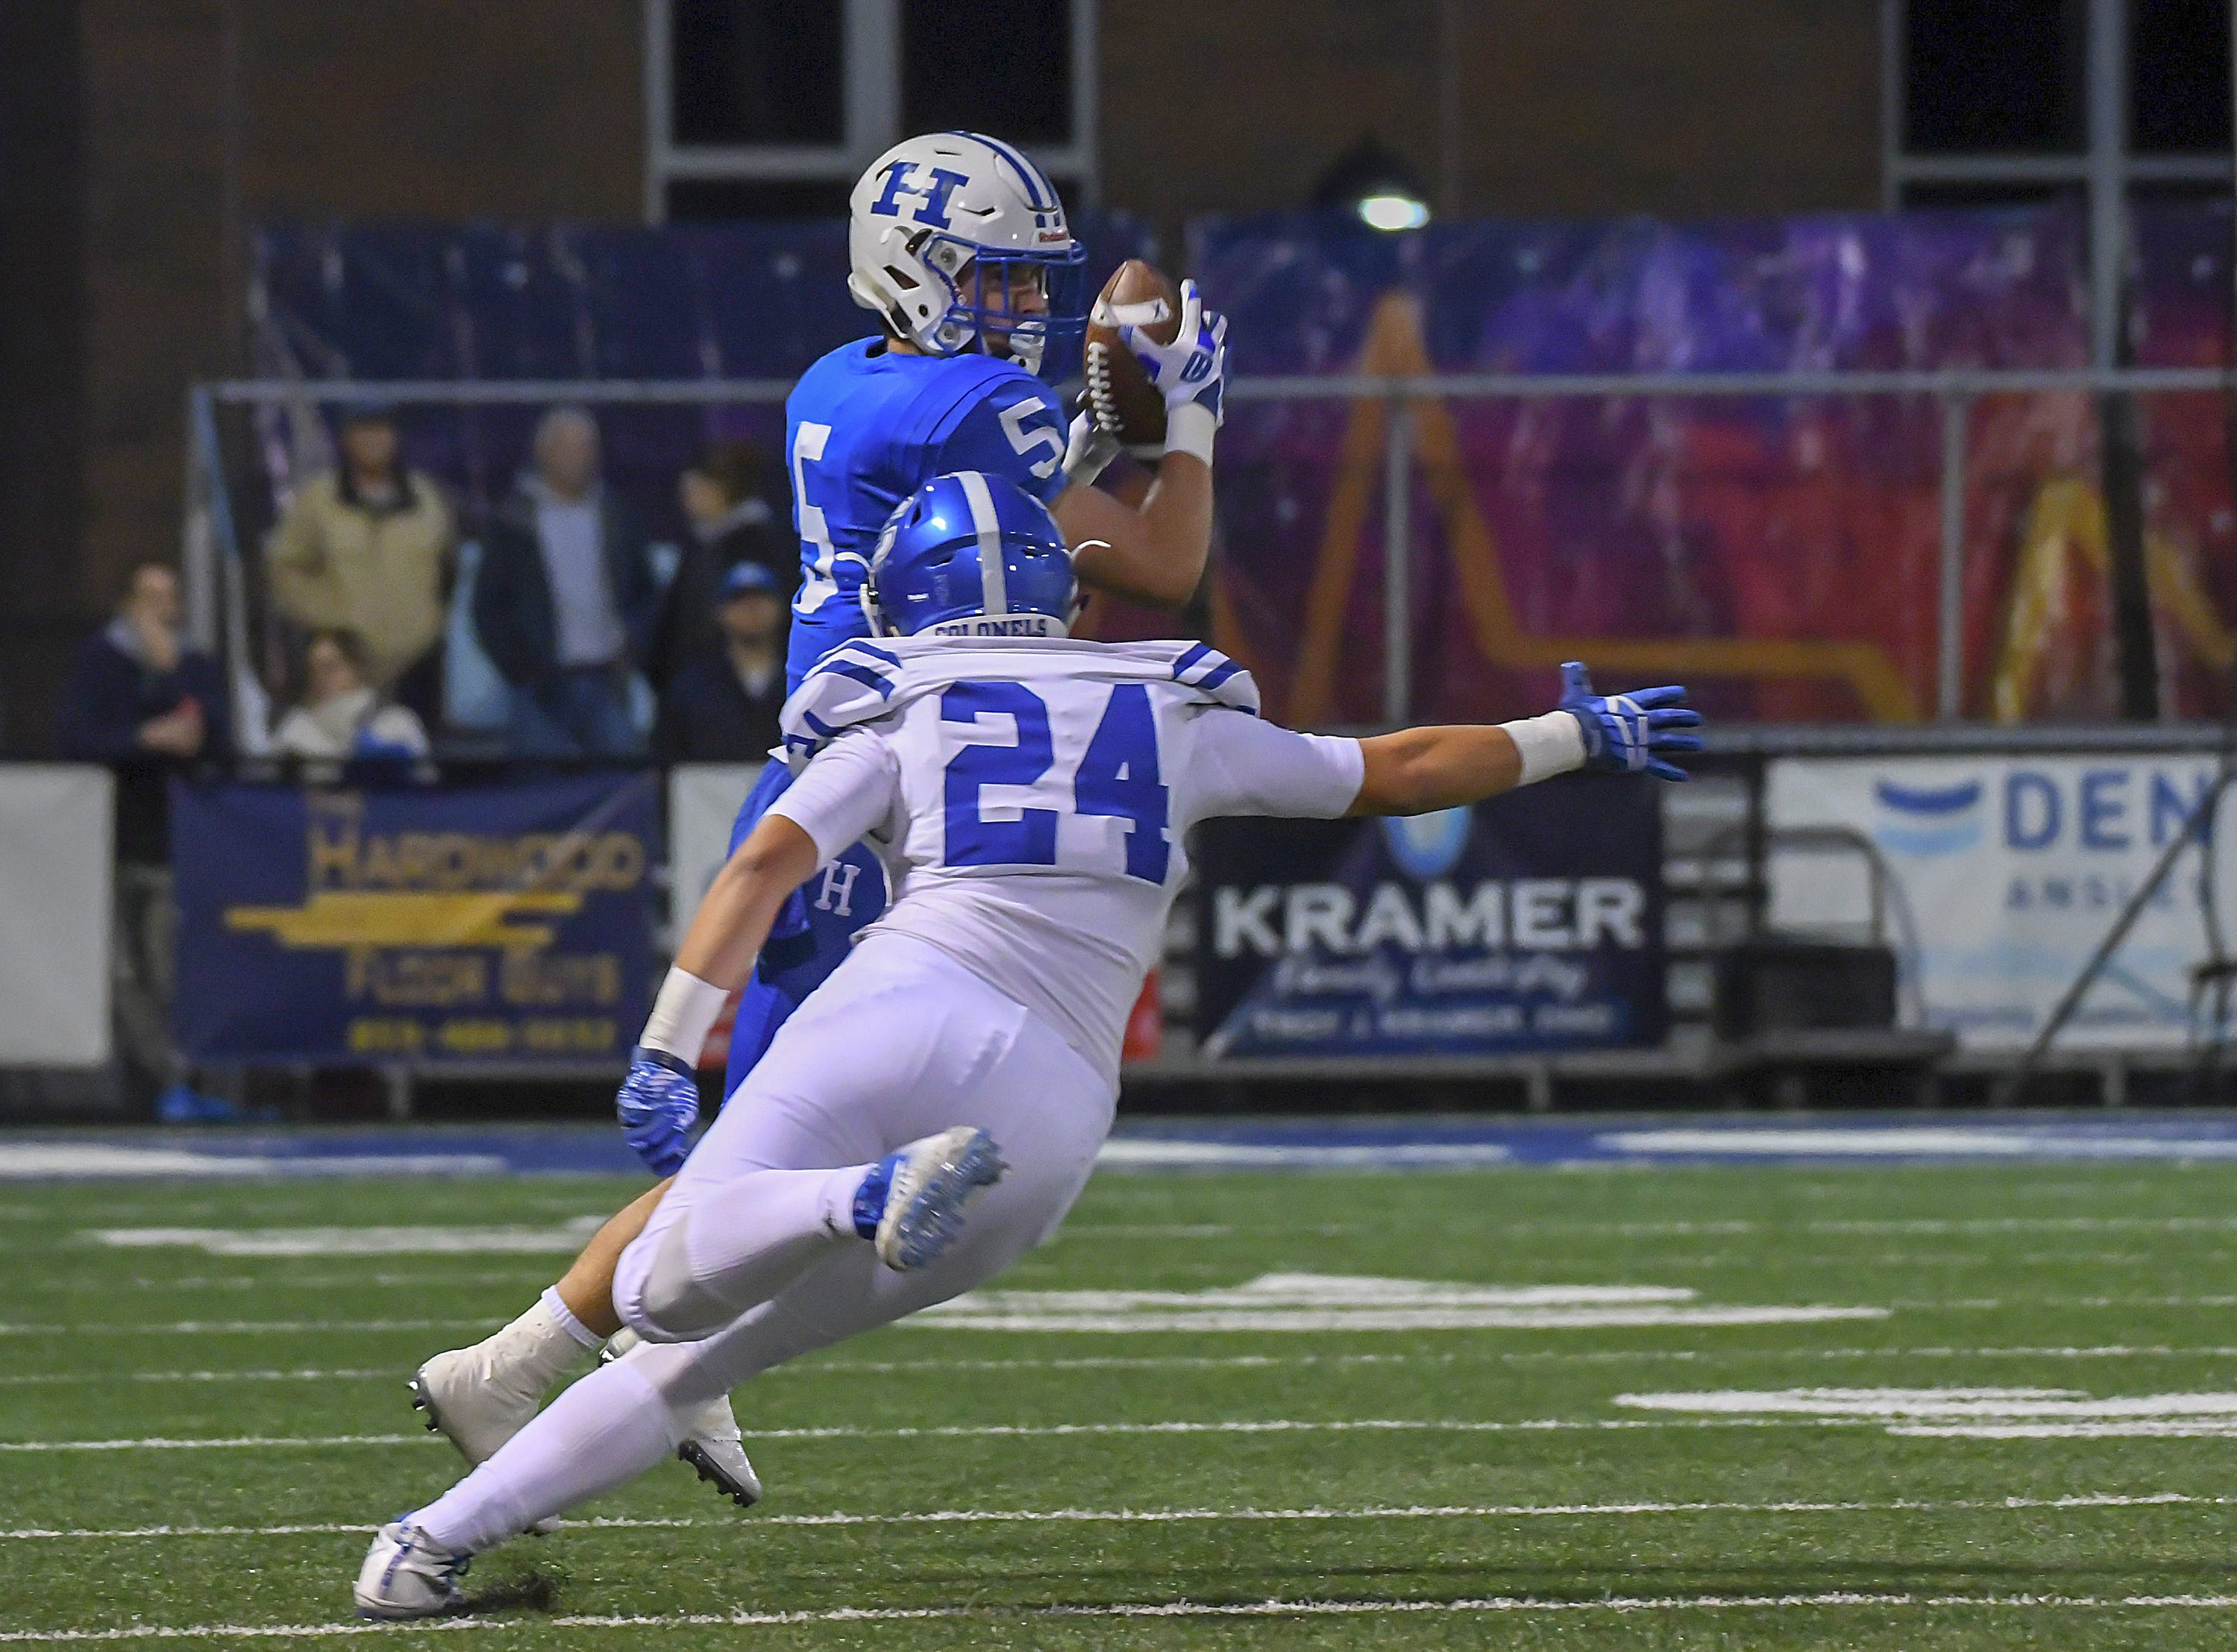 Cooper Schwalbach (5) of Highlands catches a pass against Covington Catholic, Highlands High School, Ft. Thomas, KY, Friday, October 12, 2018